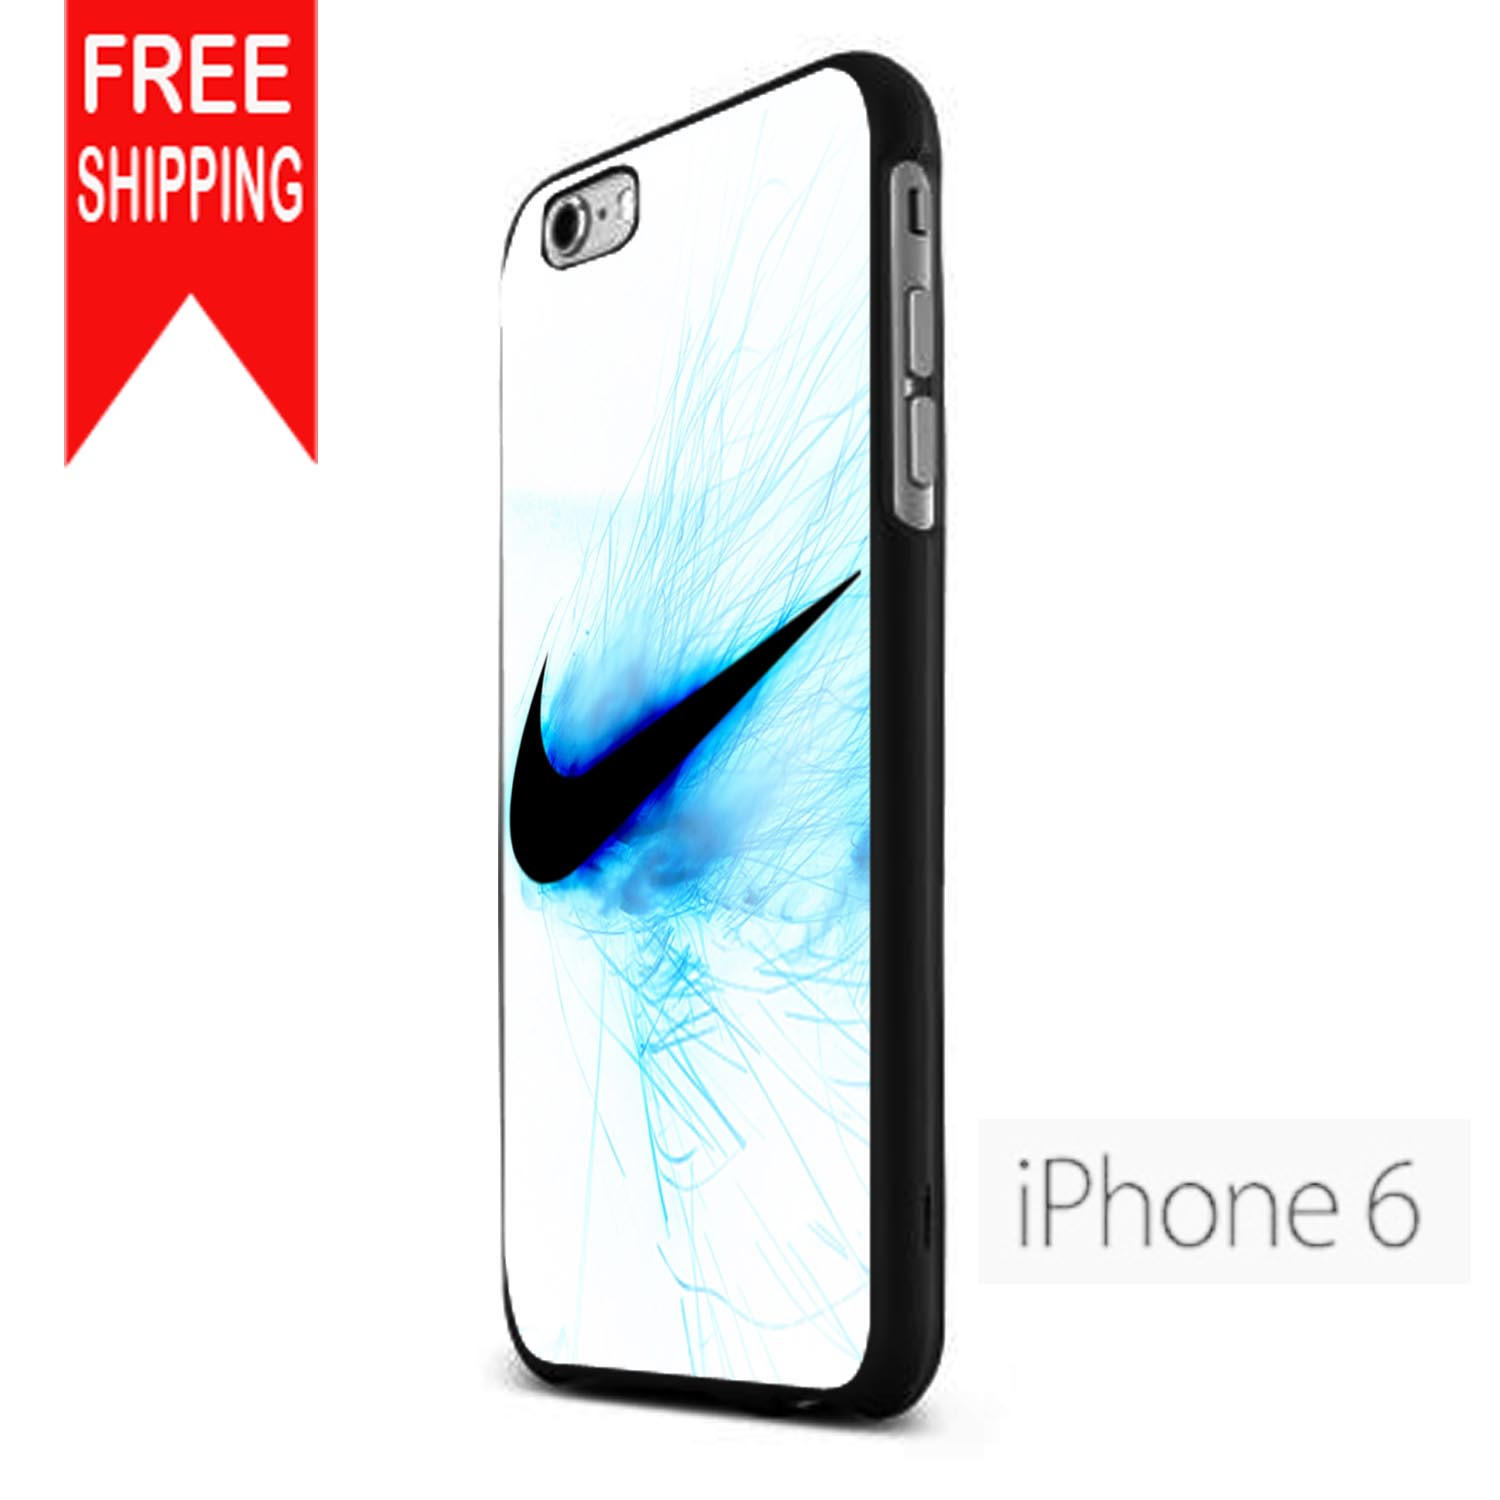 nike logo blue fire fdl iphone 6 case from iphone case. Black Bedroom Furniture Sets. Home Design Ideas